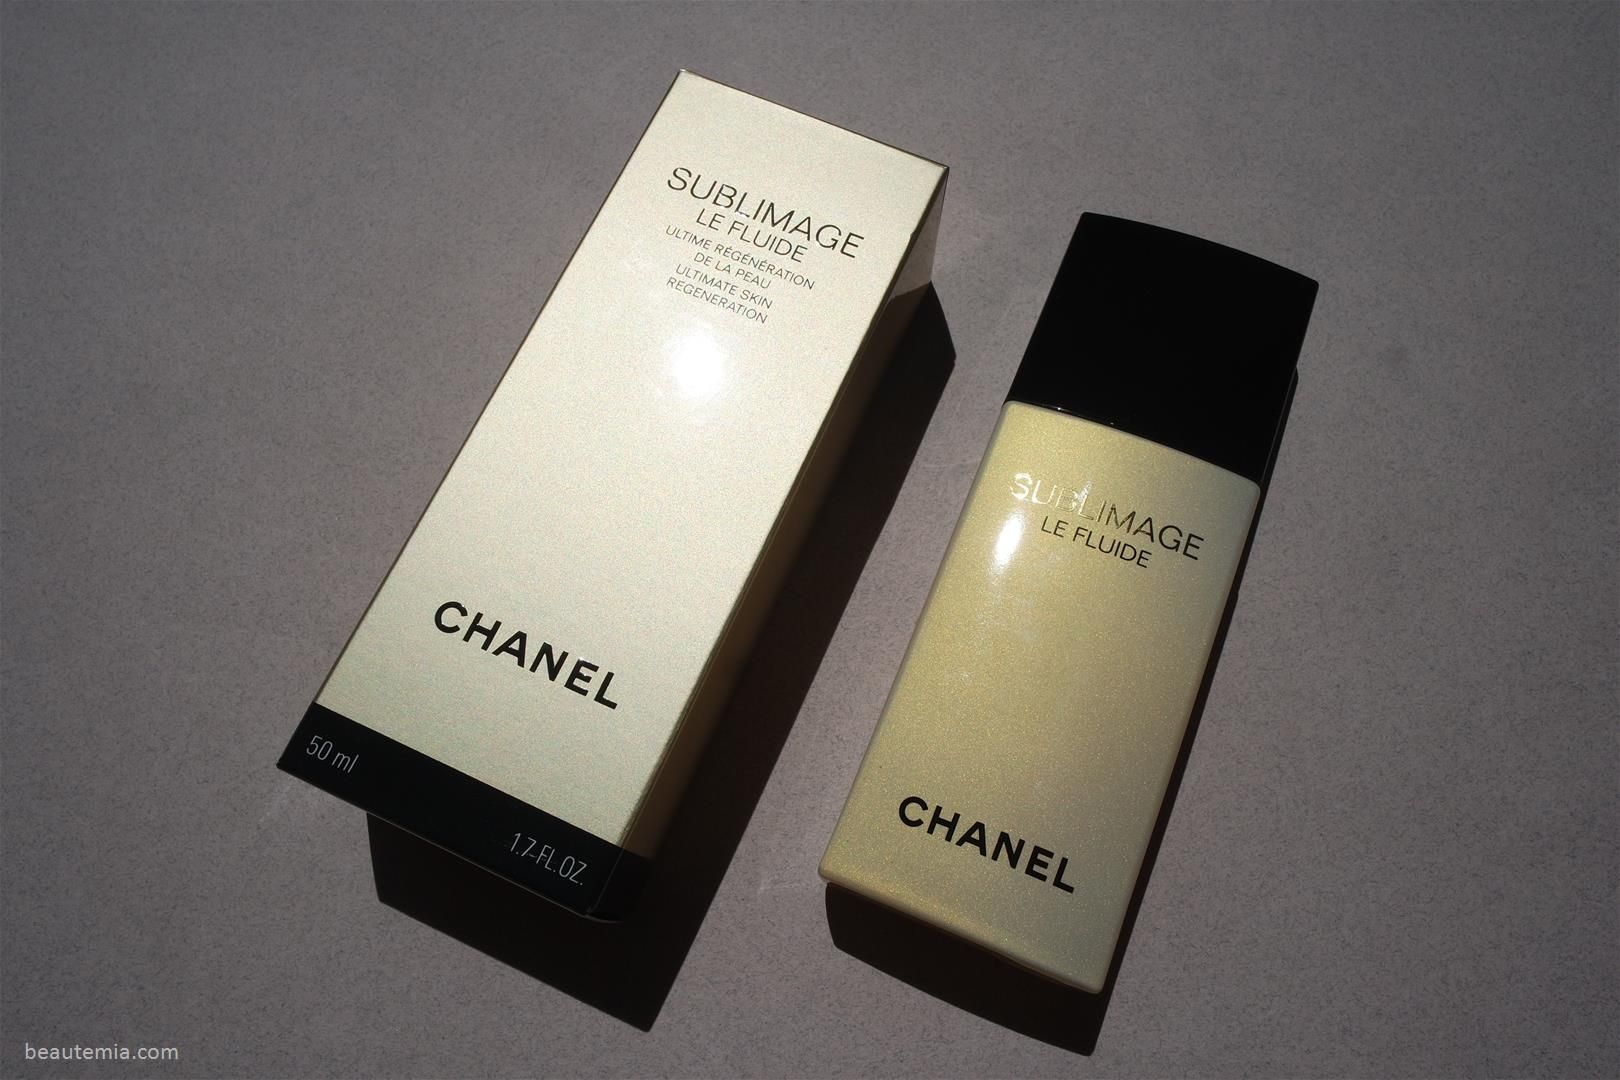 Chanel Sublimage Le Fluide, Chanel sublimage la lotion supreme, Chanel La Solution 10 de Chanel, Chanel Sublimage L'Essence Fondamentale, Chanel Sublimage L'Extrait de Crème, chanel LES BEIGES Sheer Healthy Glow Moisturizing Tint SPF 30, chanel LES BEIGES Sheer Healthy Glow Moisturizing Tint SPF 30 swatches, LES BEIGES Sheer Healthy Glow Moisturizing Tint SPF 30 shade light, chanel sunscreen, celebrity beauty secrets, no makeup makeup look, no makeup makeup, mineral sunscreen, lisa eldridge, chanel makeup, chanel skincare, chanel hydra beauty, chanel le lift, chanel sublimage, chanel mask, chanel mascara, chanel hydra beauty micro serum, chanel foundation swatches, chanel lipstick swatches, chanel le blanc serum, chanel mist, chanel chain bag, chanel tweed jacket, coco chanel, karl lagerfeld, chanel cc cream, chanel cc cream swatches, laneige bb cushion, k-beauty, get it beauty, chanel les beiges foundation swatches & chanel les beiges cushion foundation compact